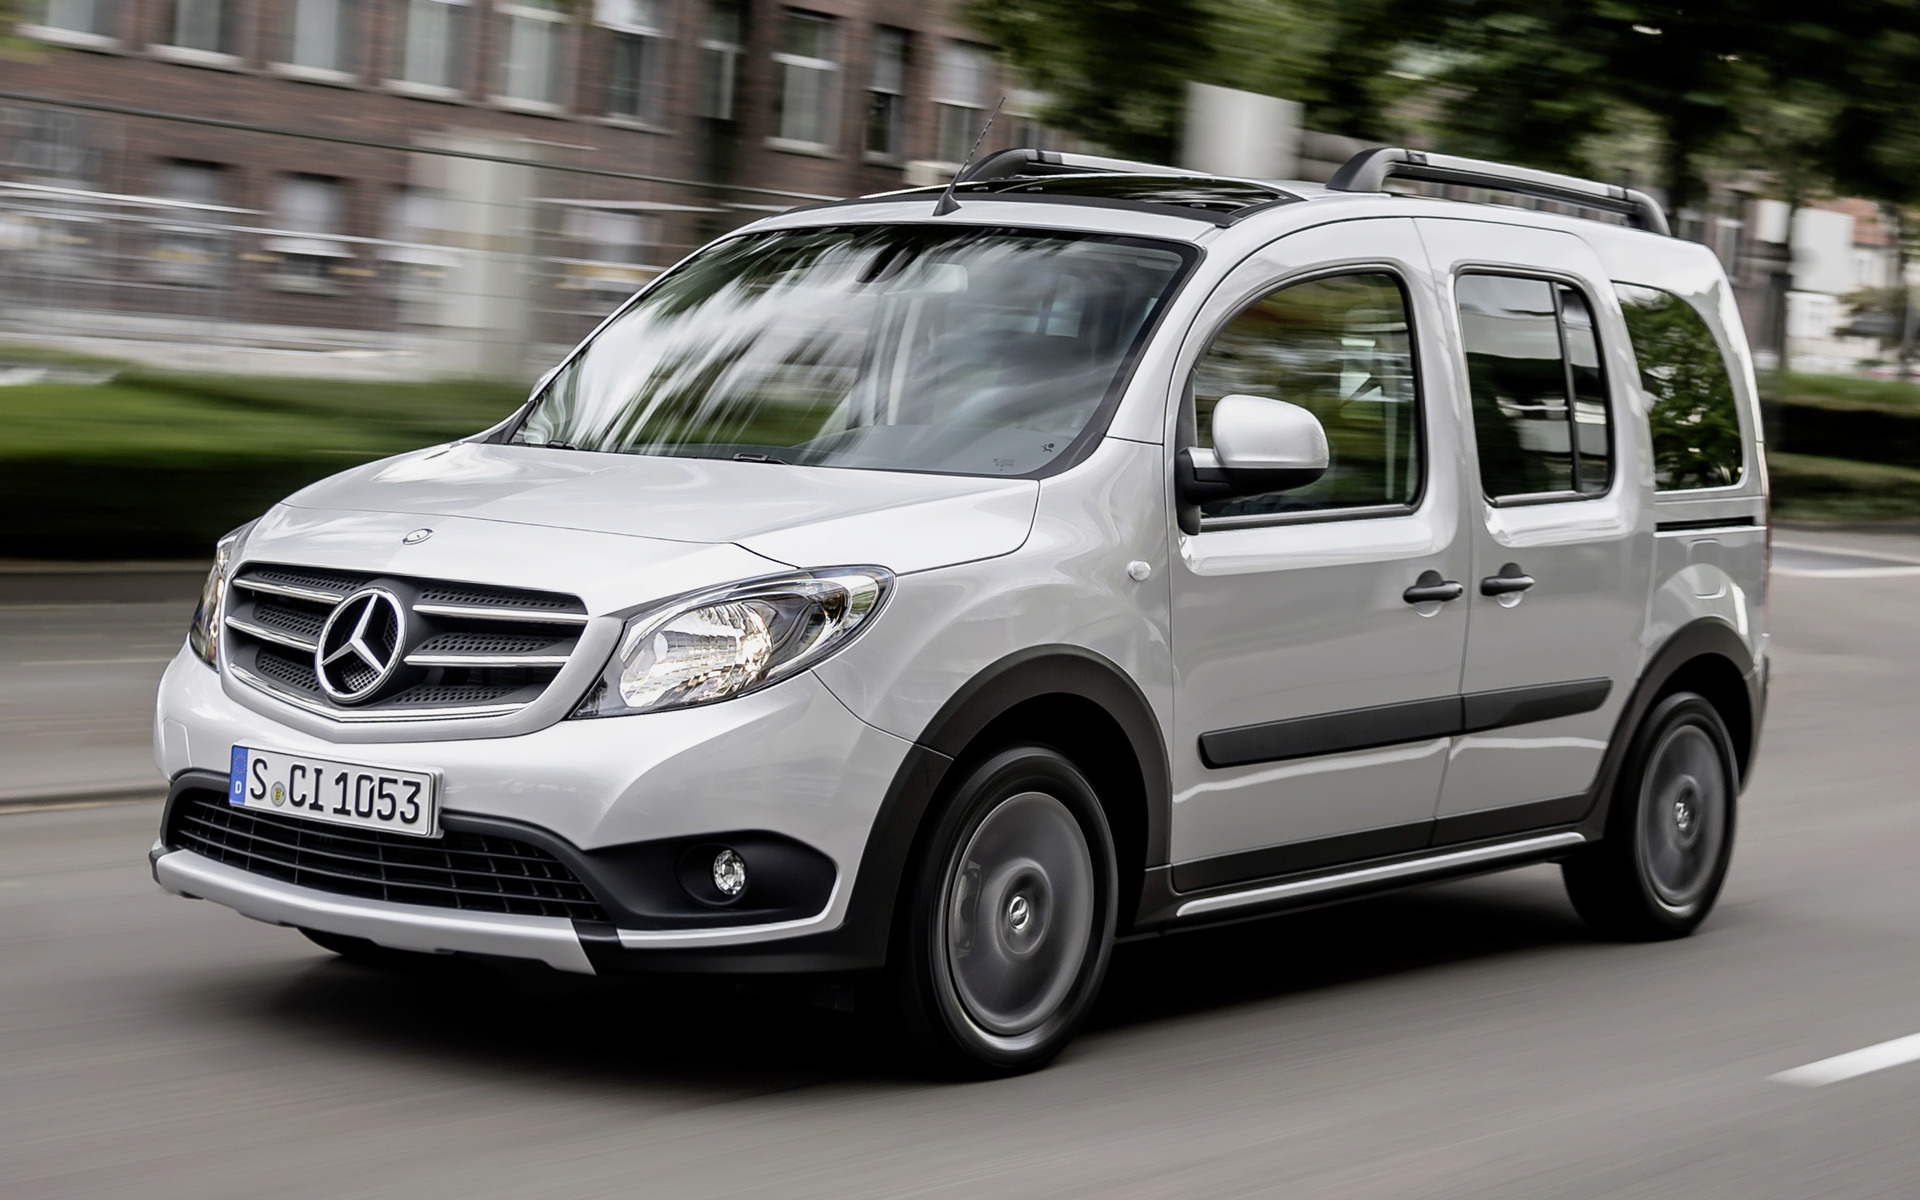 2016 mercedes-benz citan off-road  long